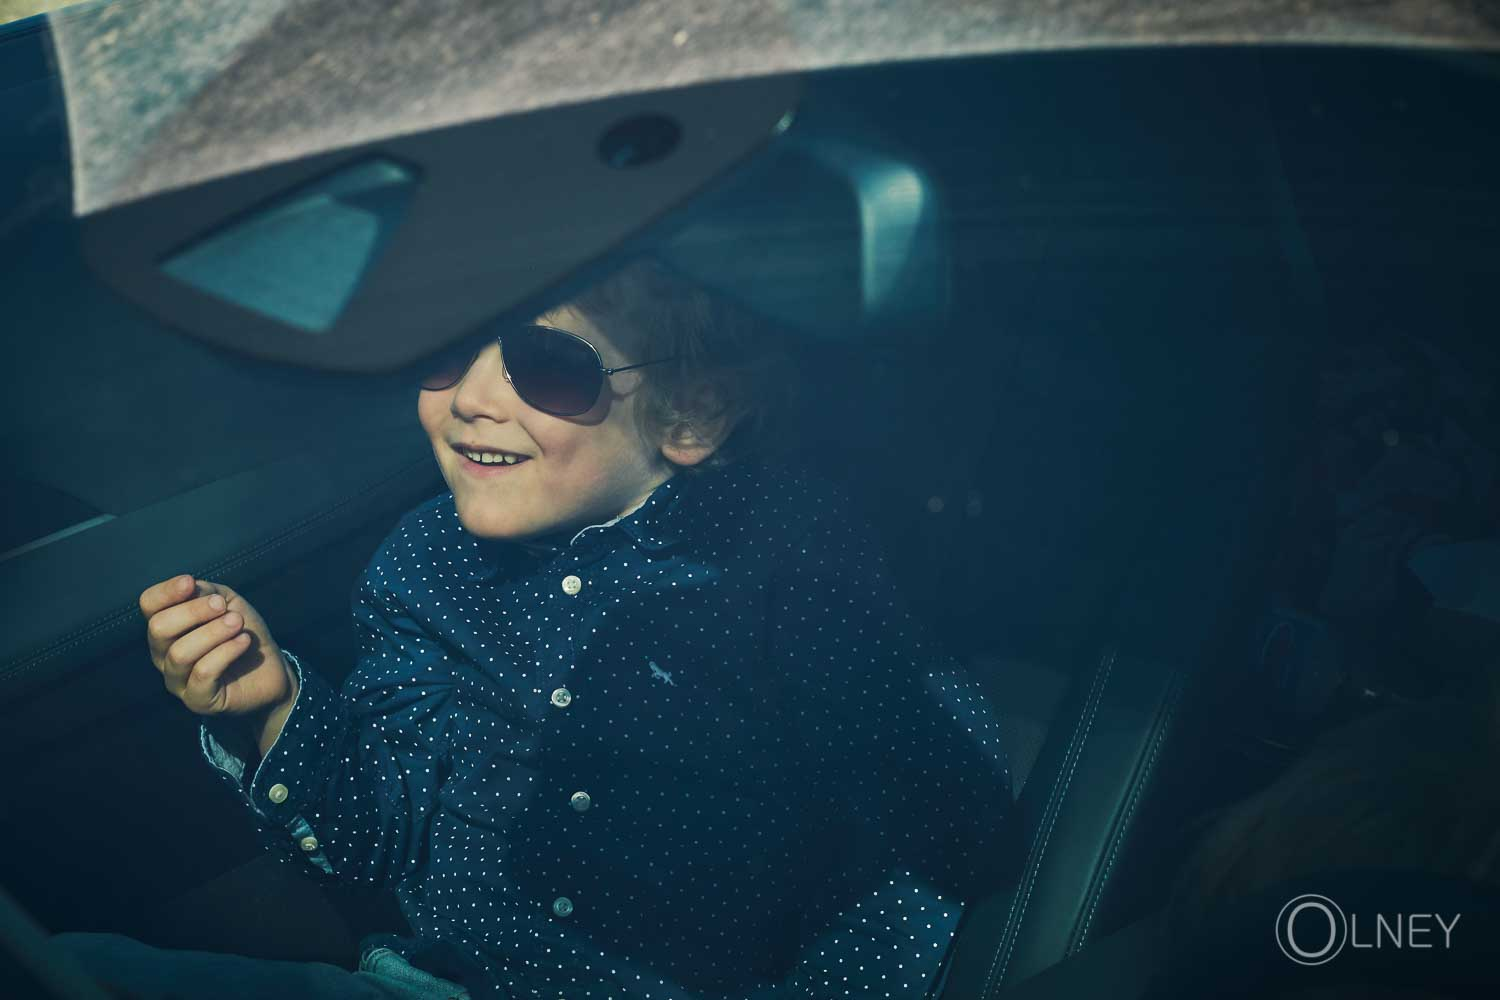 I'm a star kid in car wearing sunglasses